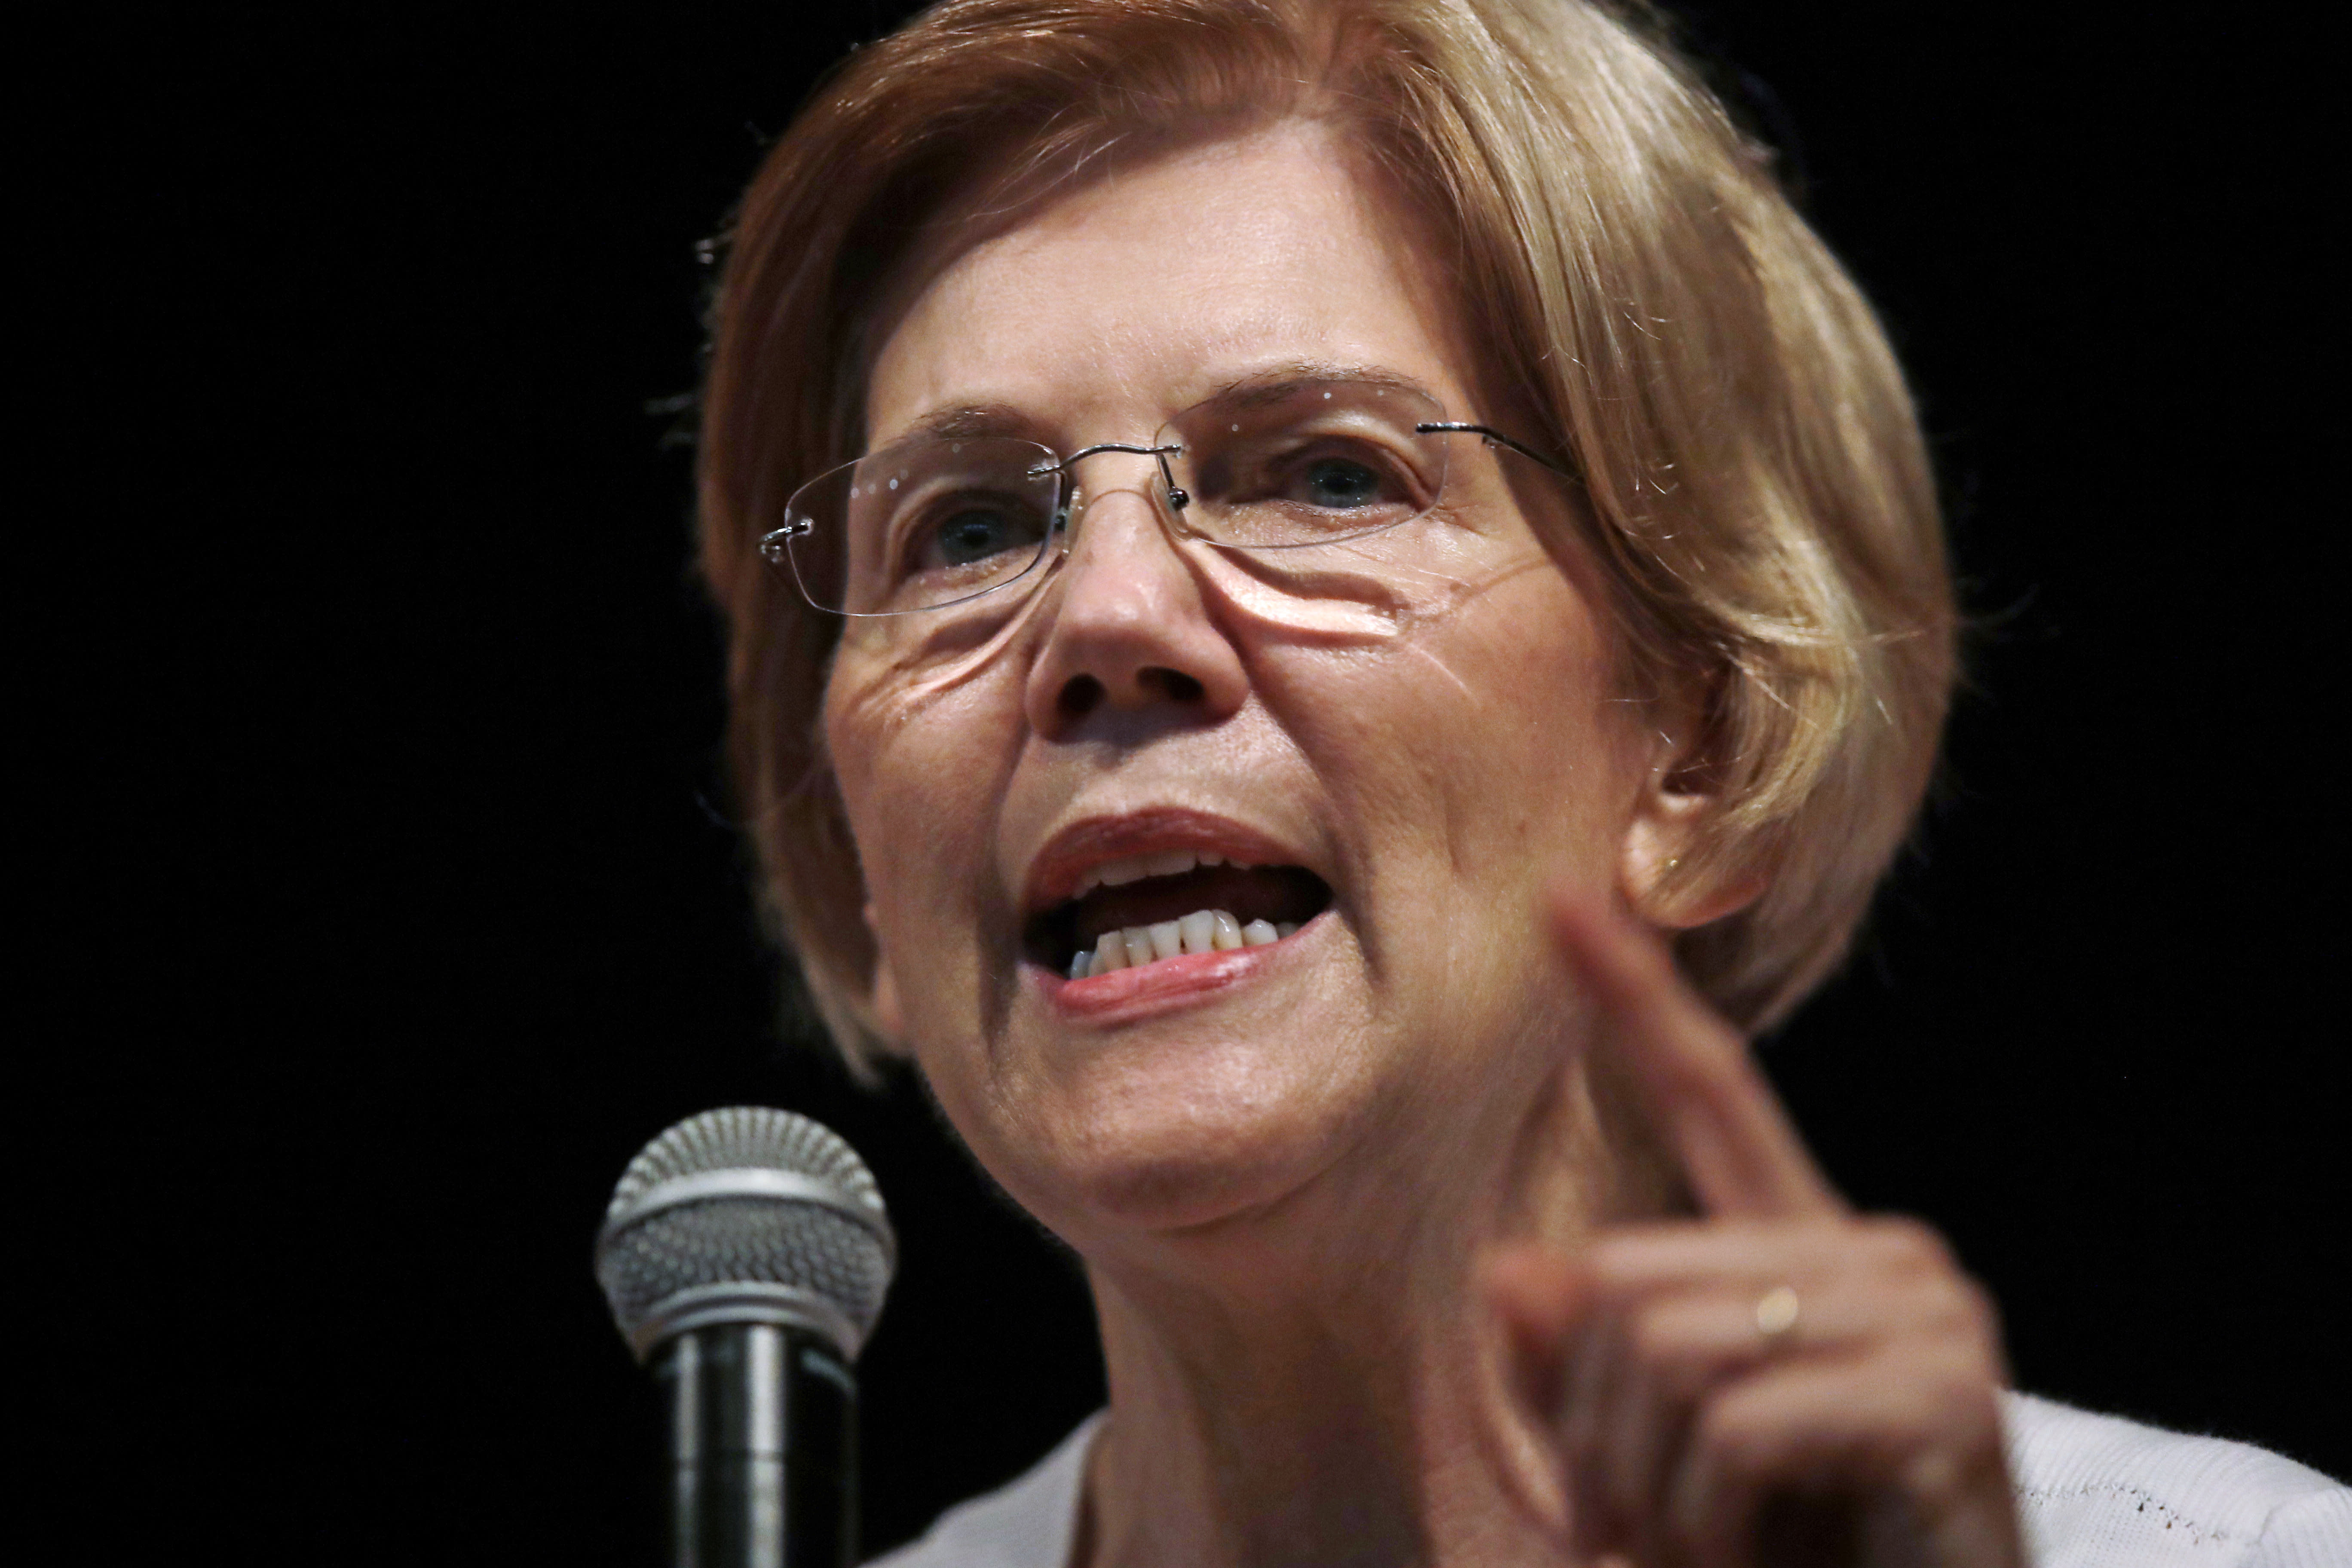 <p> FILE - In this Wednesday, Aug. 8, 2018, file photo, U.S. Sen. Elizabeth Warren, D-Mass., speaks during a town hall-style gathering in Woburn, Ma. A DNA analysis done on Sen. Warren provides strong evidence she has Native American heritage. She provided her test results to The Boston Globe for a story published Monday. (AP Photo/Charles Krupa, File) </p>